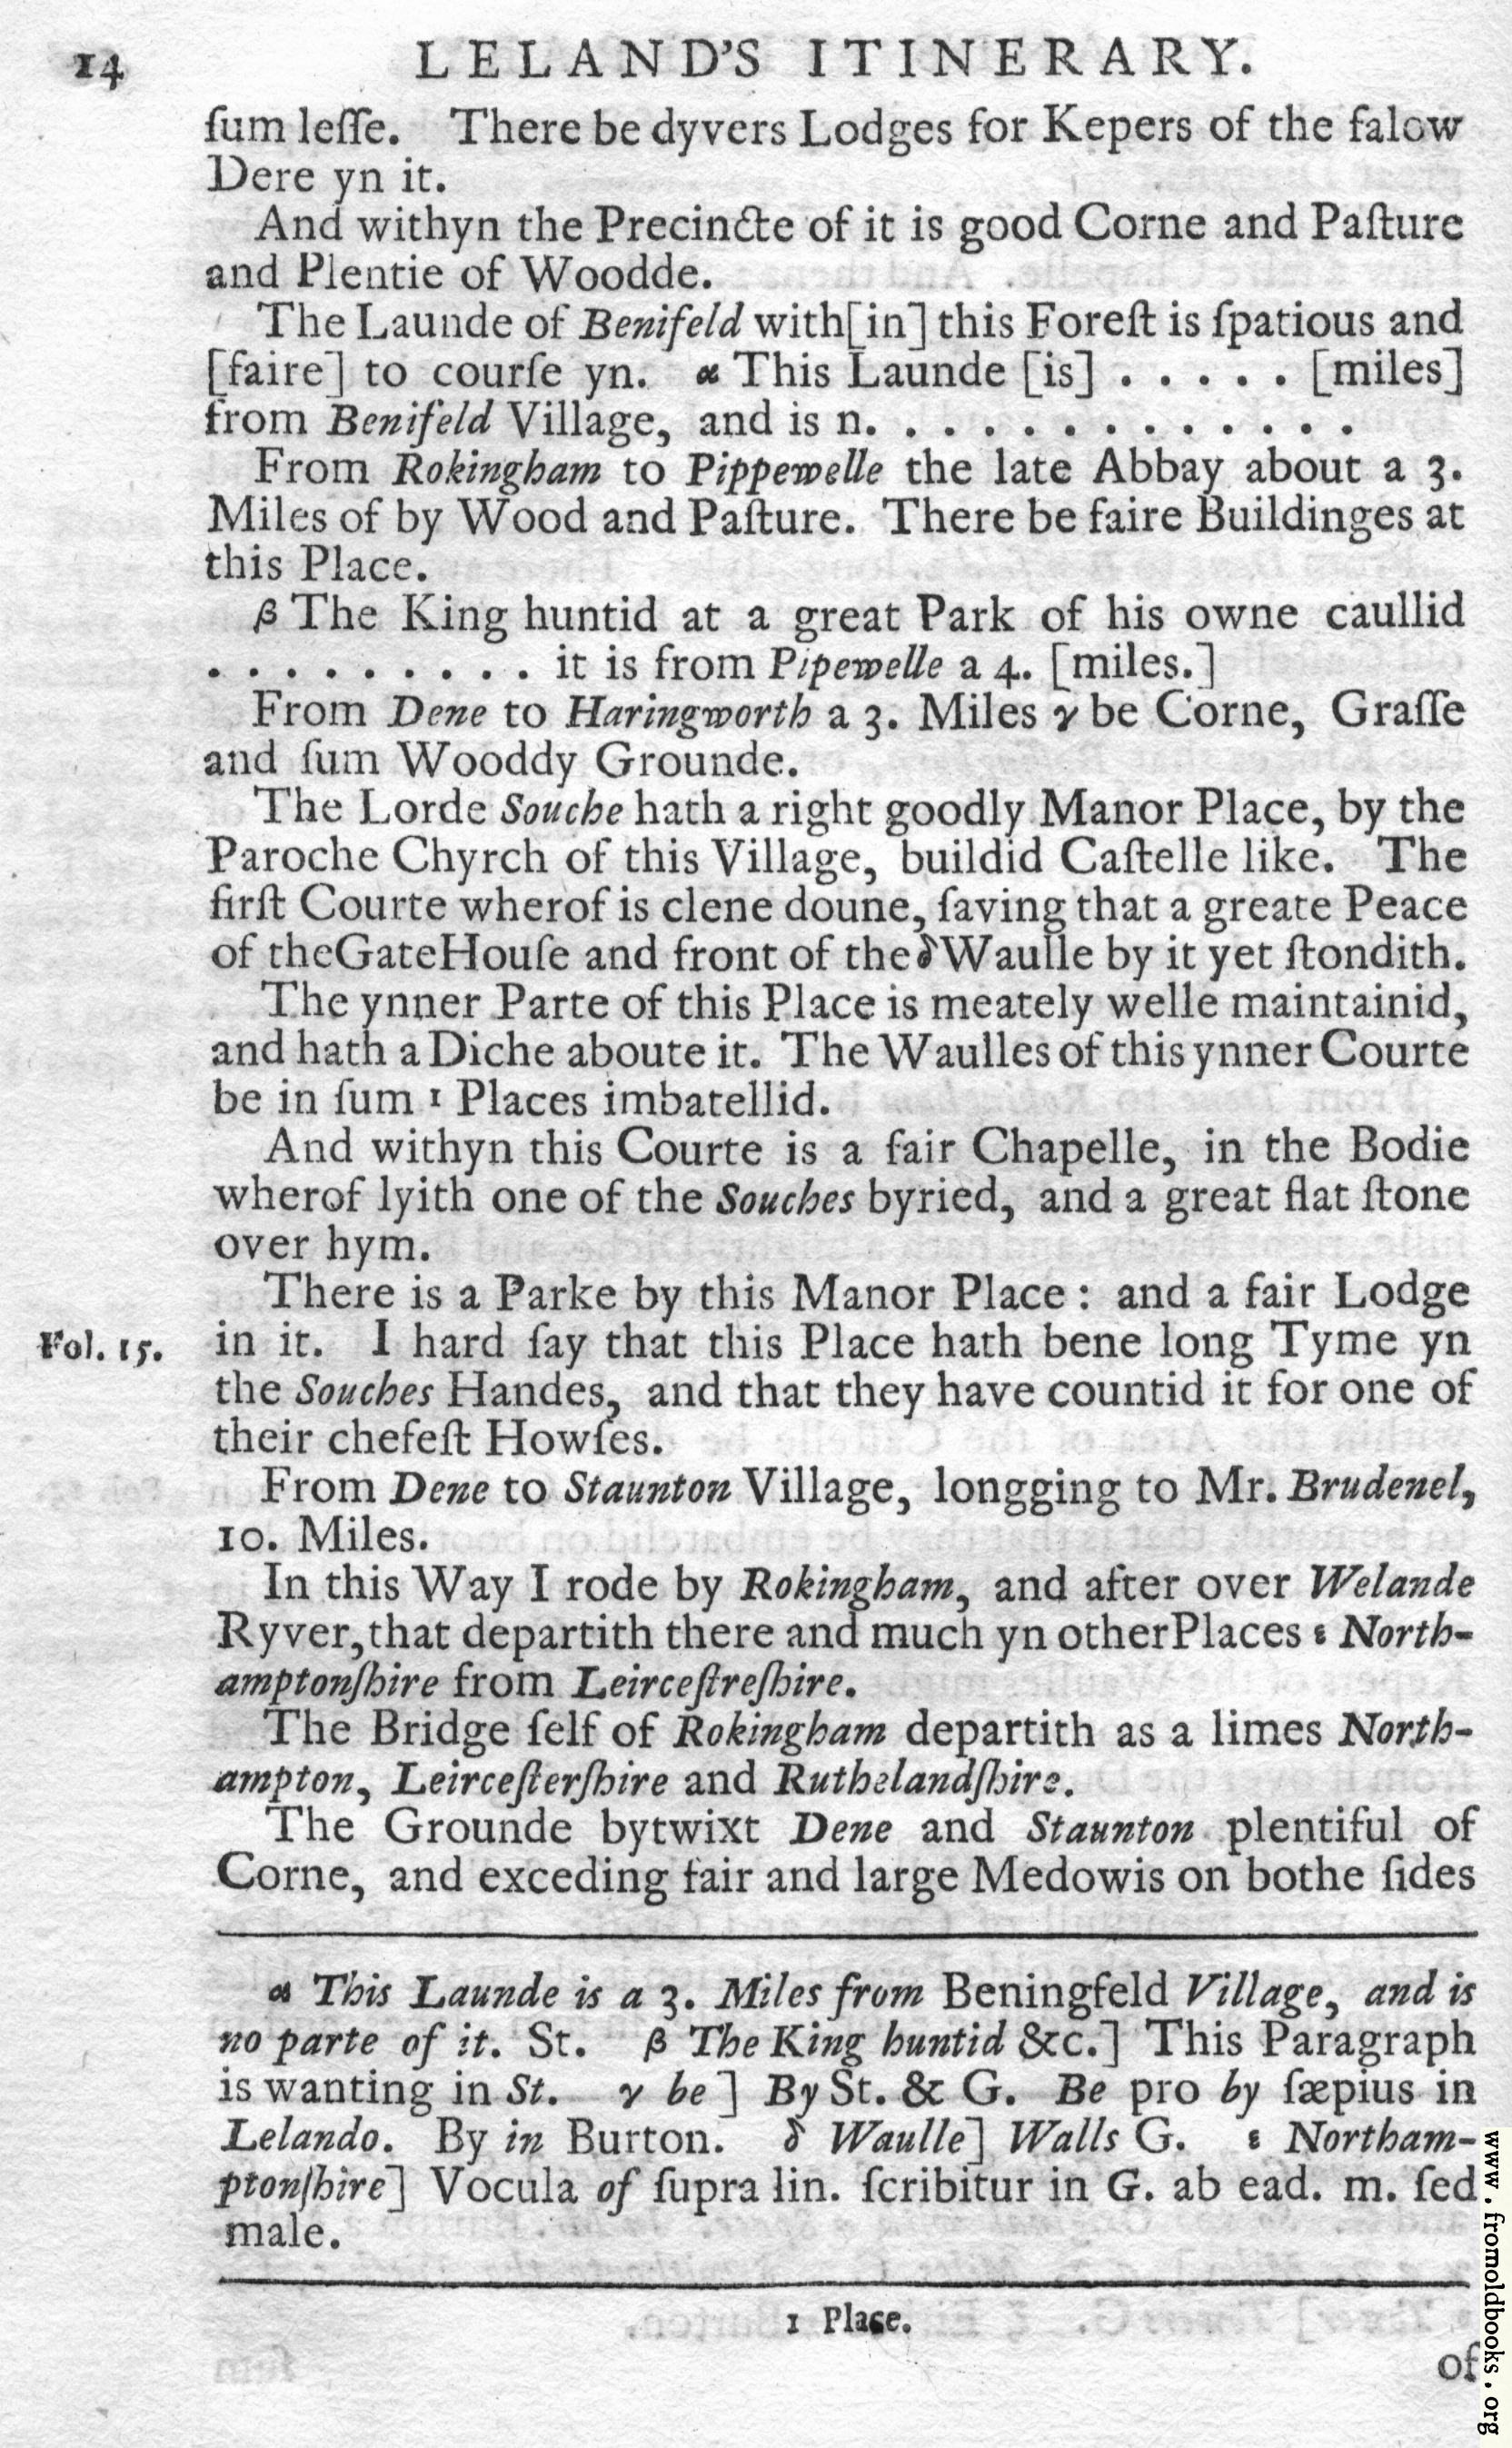 [Picture: Leland's Itinerary, Volume 1 Page 14]